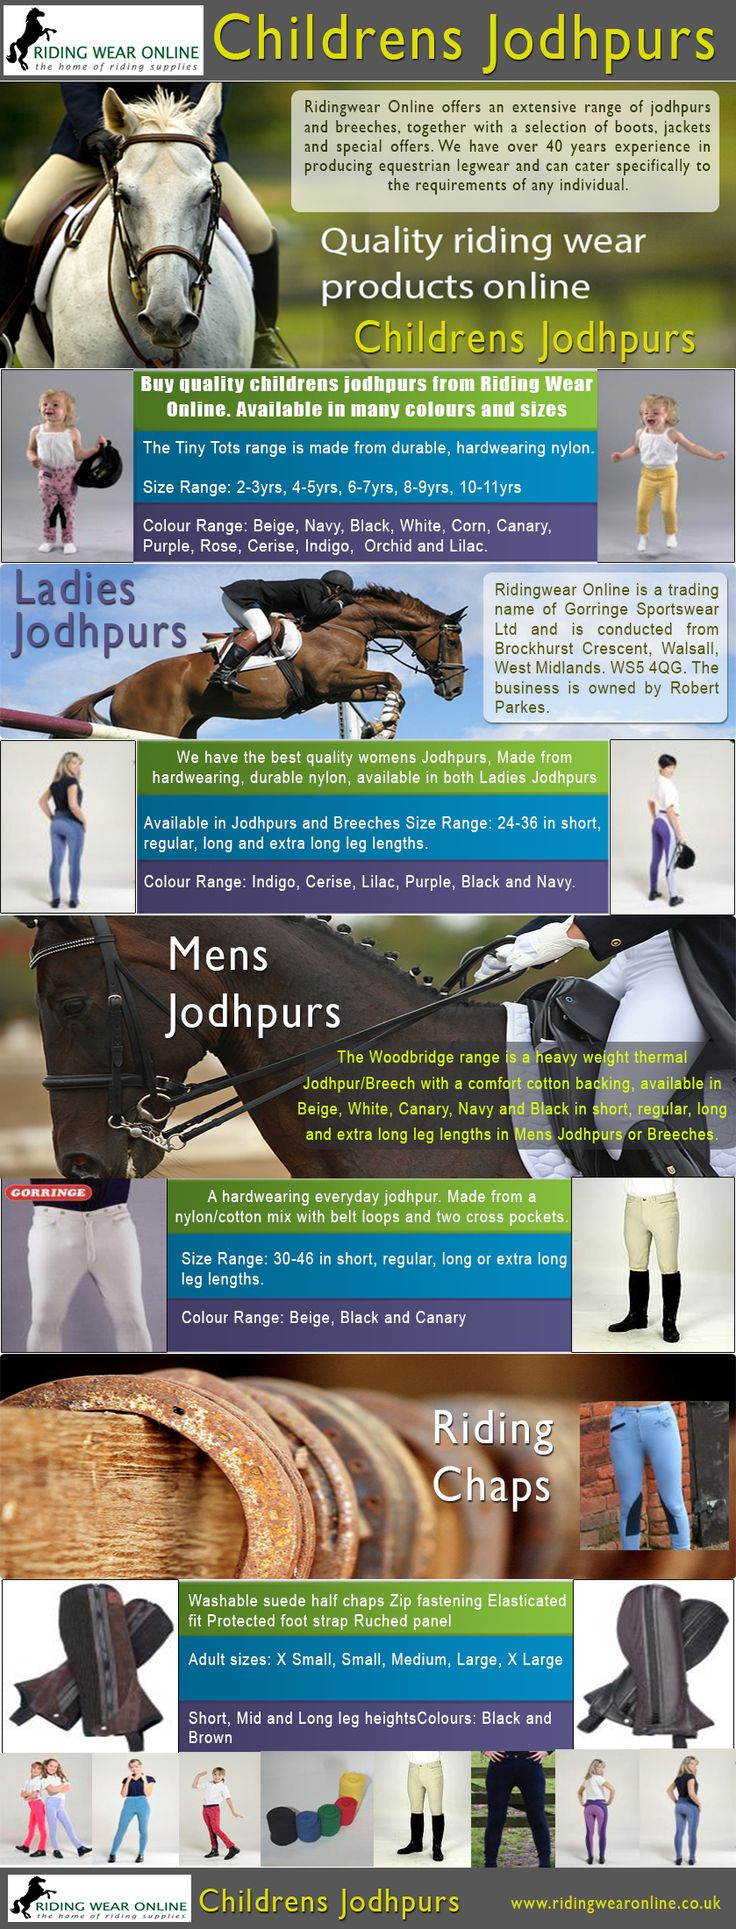 Visit our site http://www.ridingwearonline.co.uk for more information on Childrens Jodhpurs. Covered with the finest quality cotton, the Horseware  Rambo Neoprene Half Pad stays put and shaped half pad to fit contours of the back. It has perforated neoprene to create an ultea breathable weight distributing pad that helps absorb shock-  One Size Colour Black.